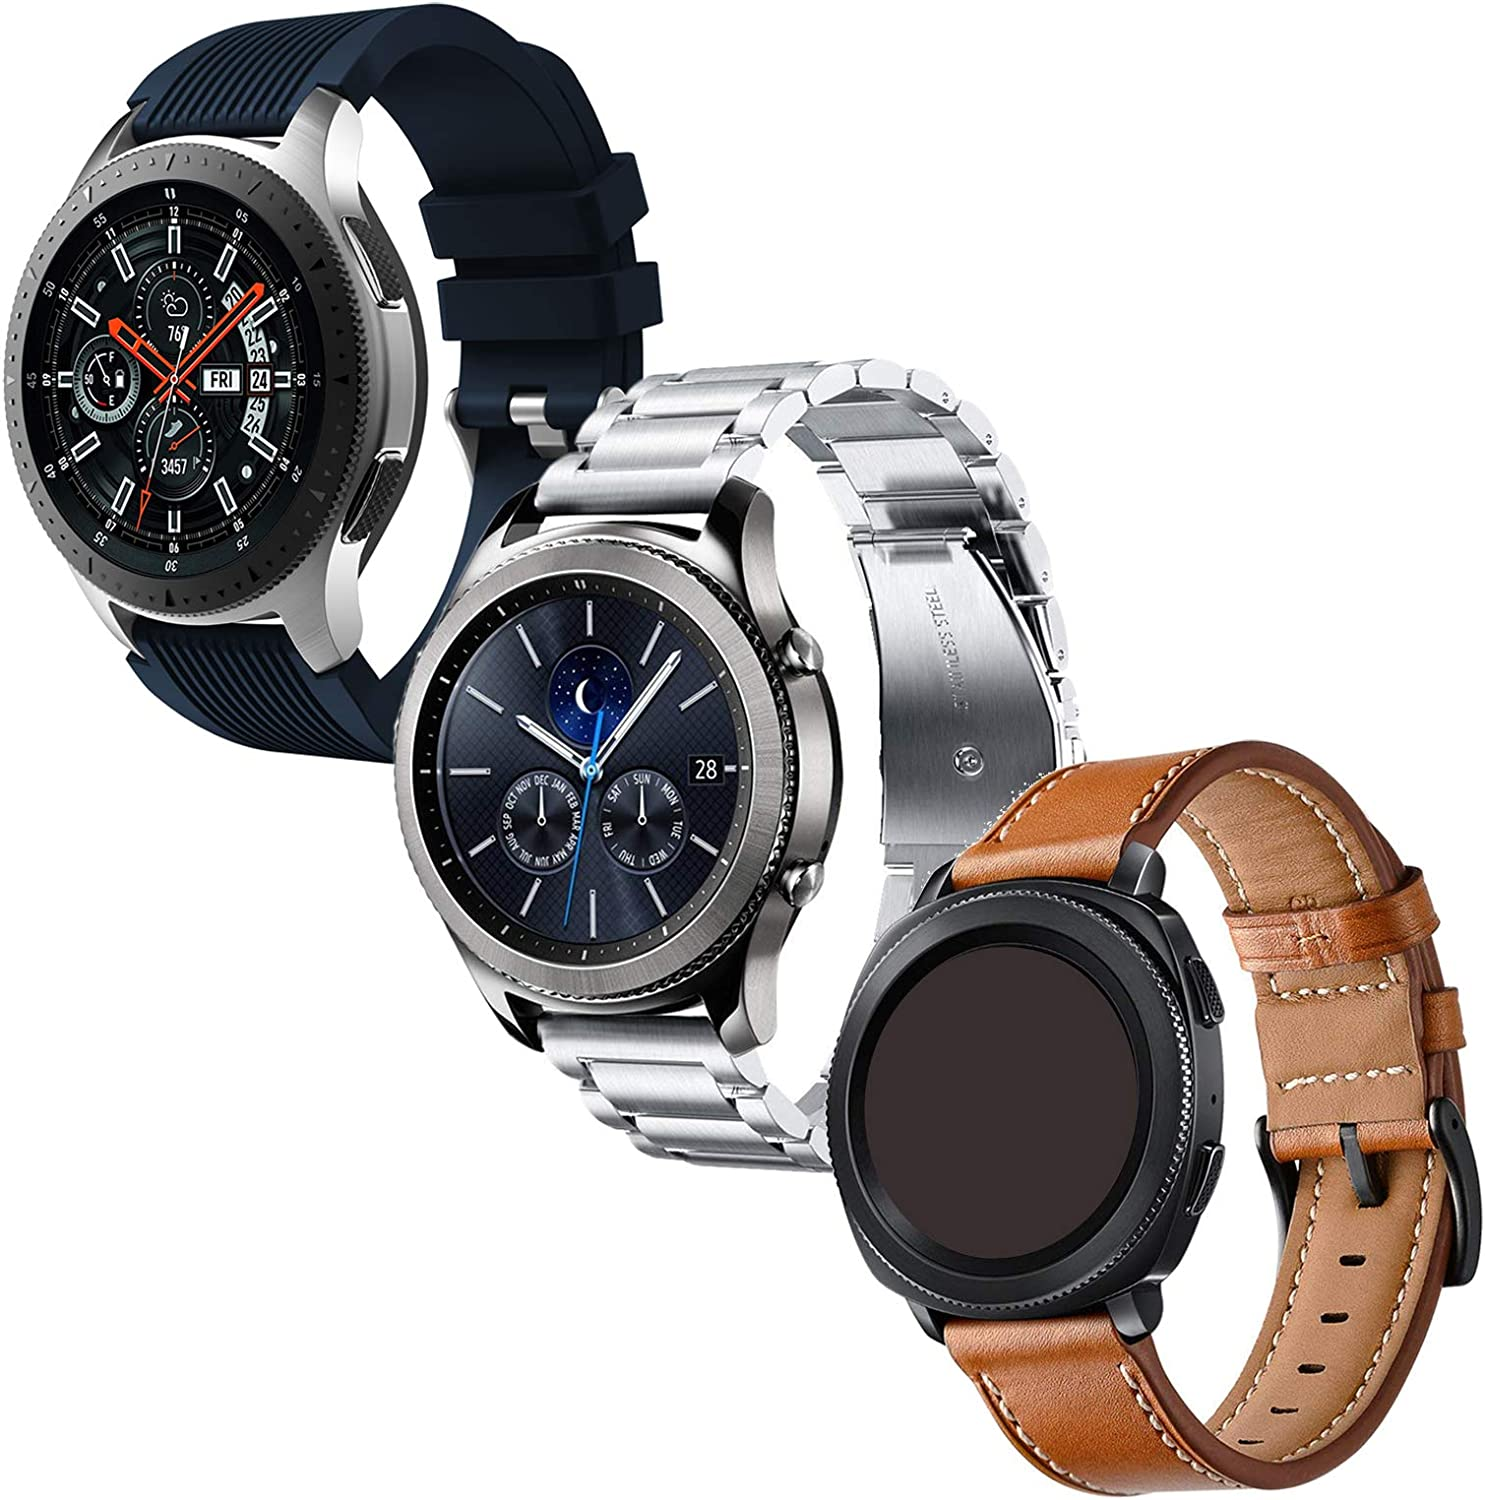 Anrir Compatible for Samsung Galaxy Watch 46mm Band, 22mm Leather+Silicone+Stainless Steel Band for Samsung Galaxy Watch 3 45mm,Garmin Vivoactive 4 45mm, Fossil Gen 5 Carlyle hr/Garrett-3 Pack